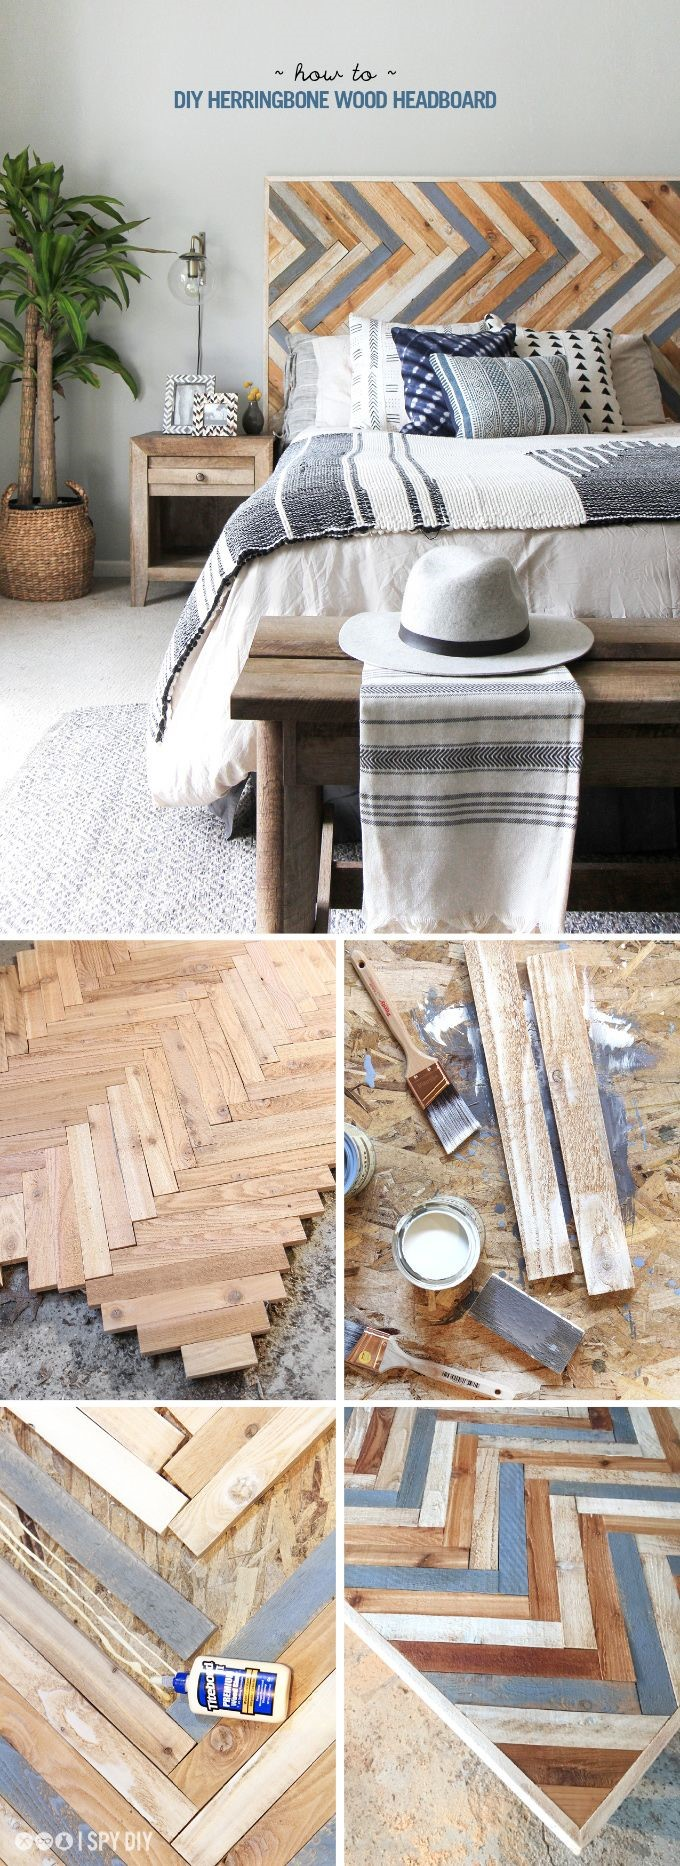 1 DIY Herringbone Wood Headboard Simphome com